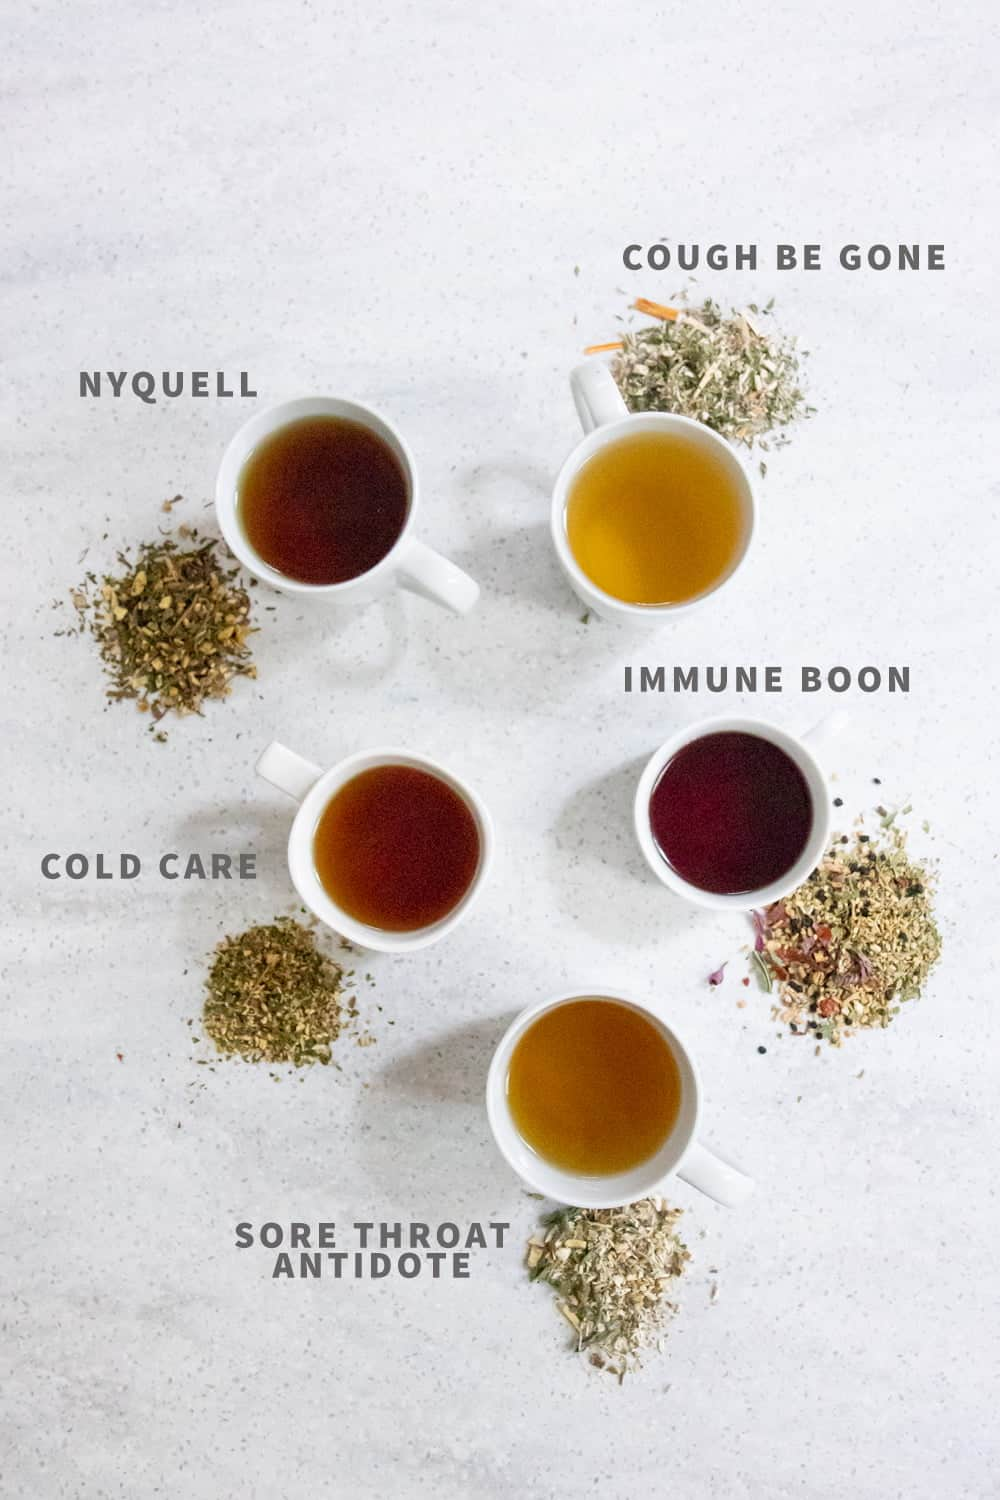 Five cups of herbal tea in white teacups, with the herbs for each nearby. From top clockwise: Cough Be Gone, Immune Boon, Sore Throat Antidote, Cold Care, and Nyquell teas